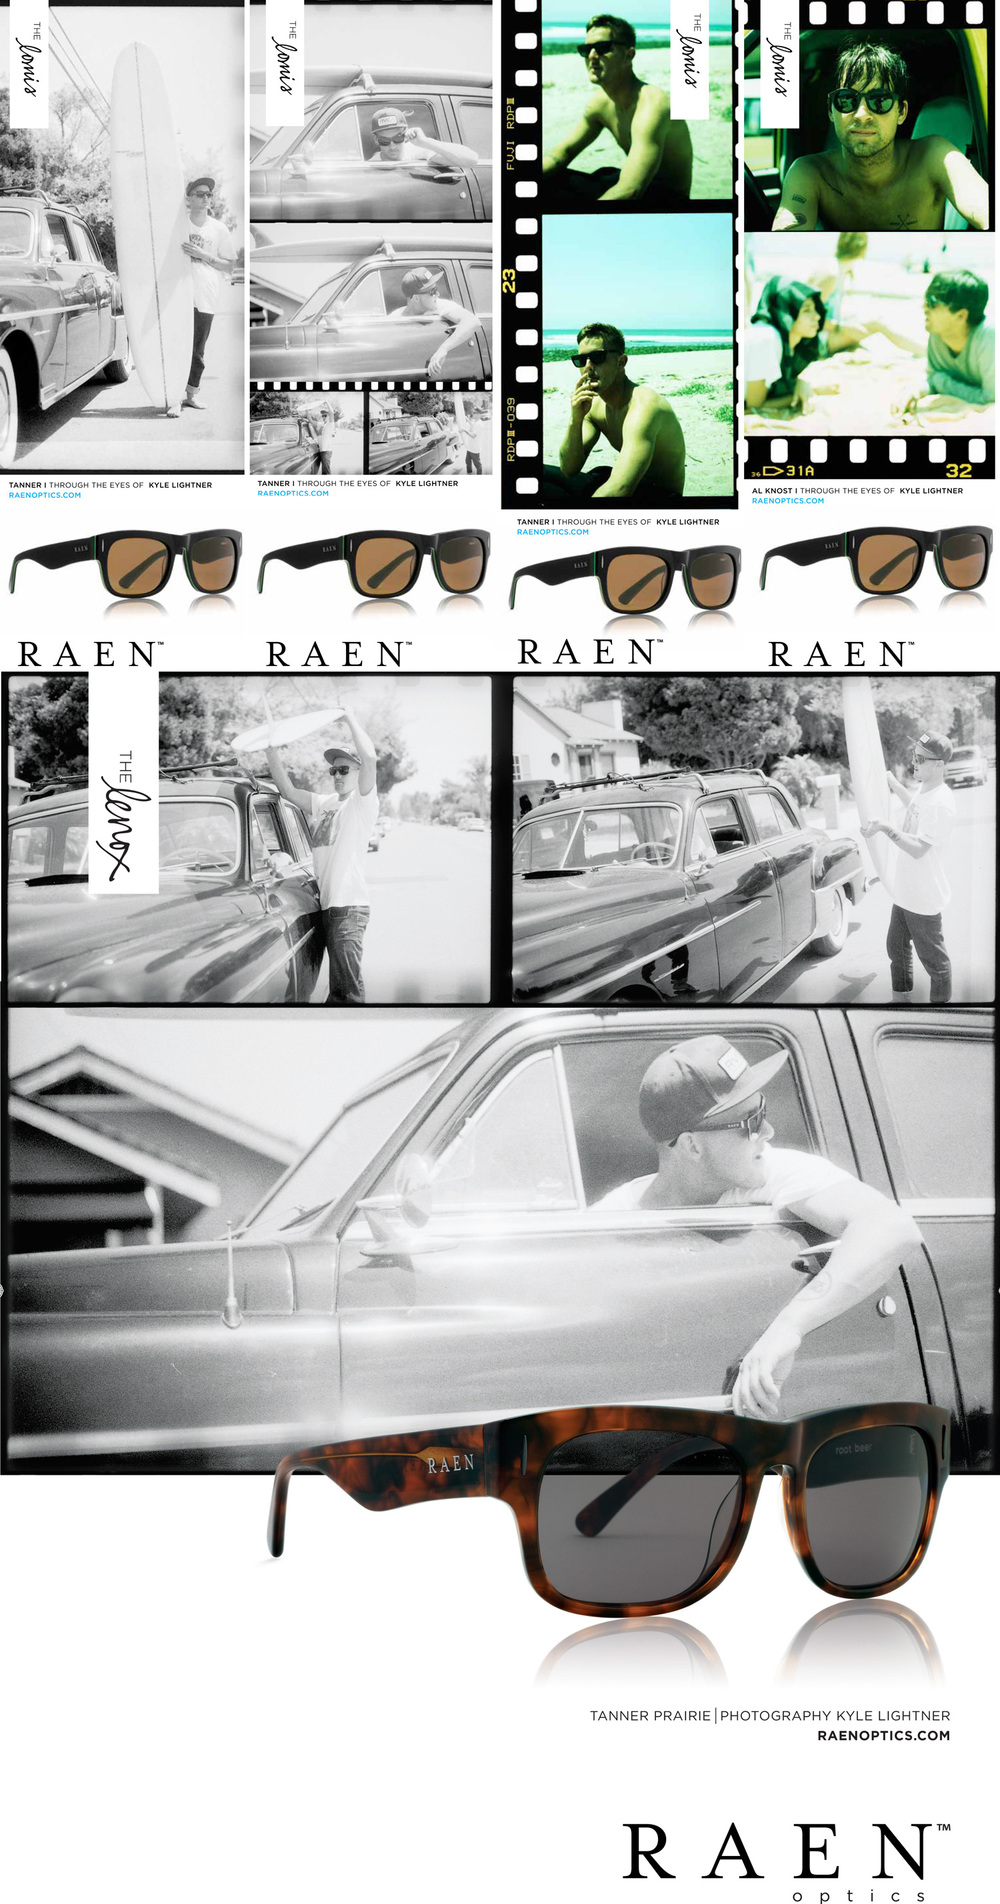 RAEN Optics Ads.